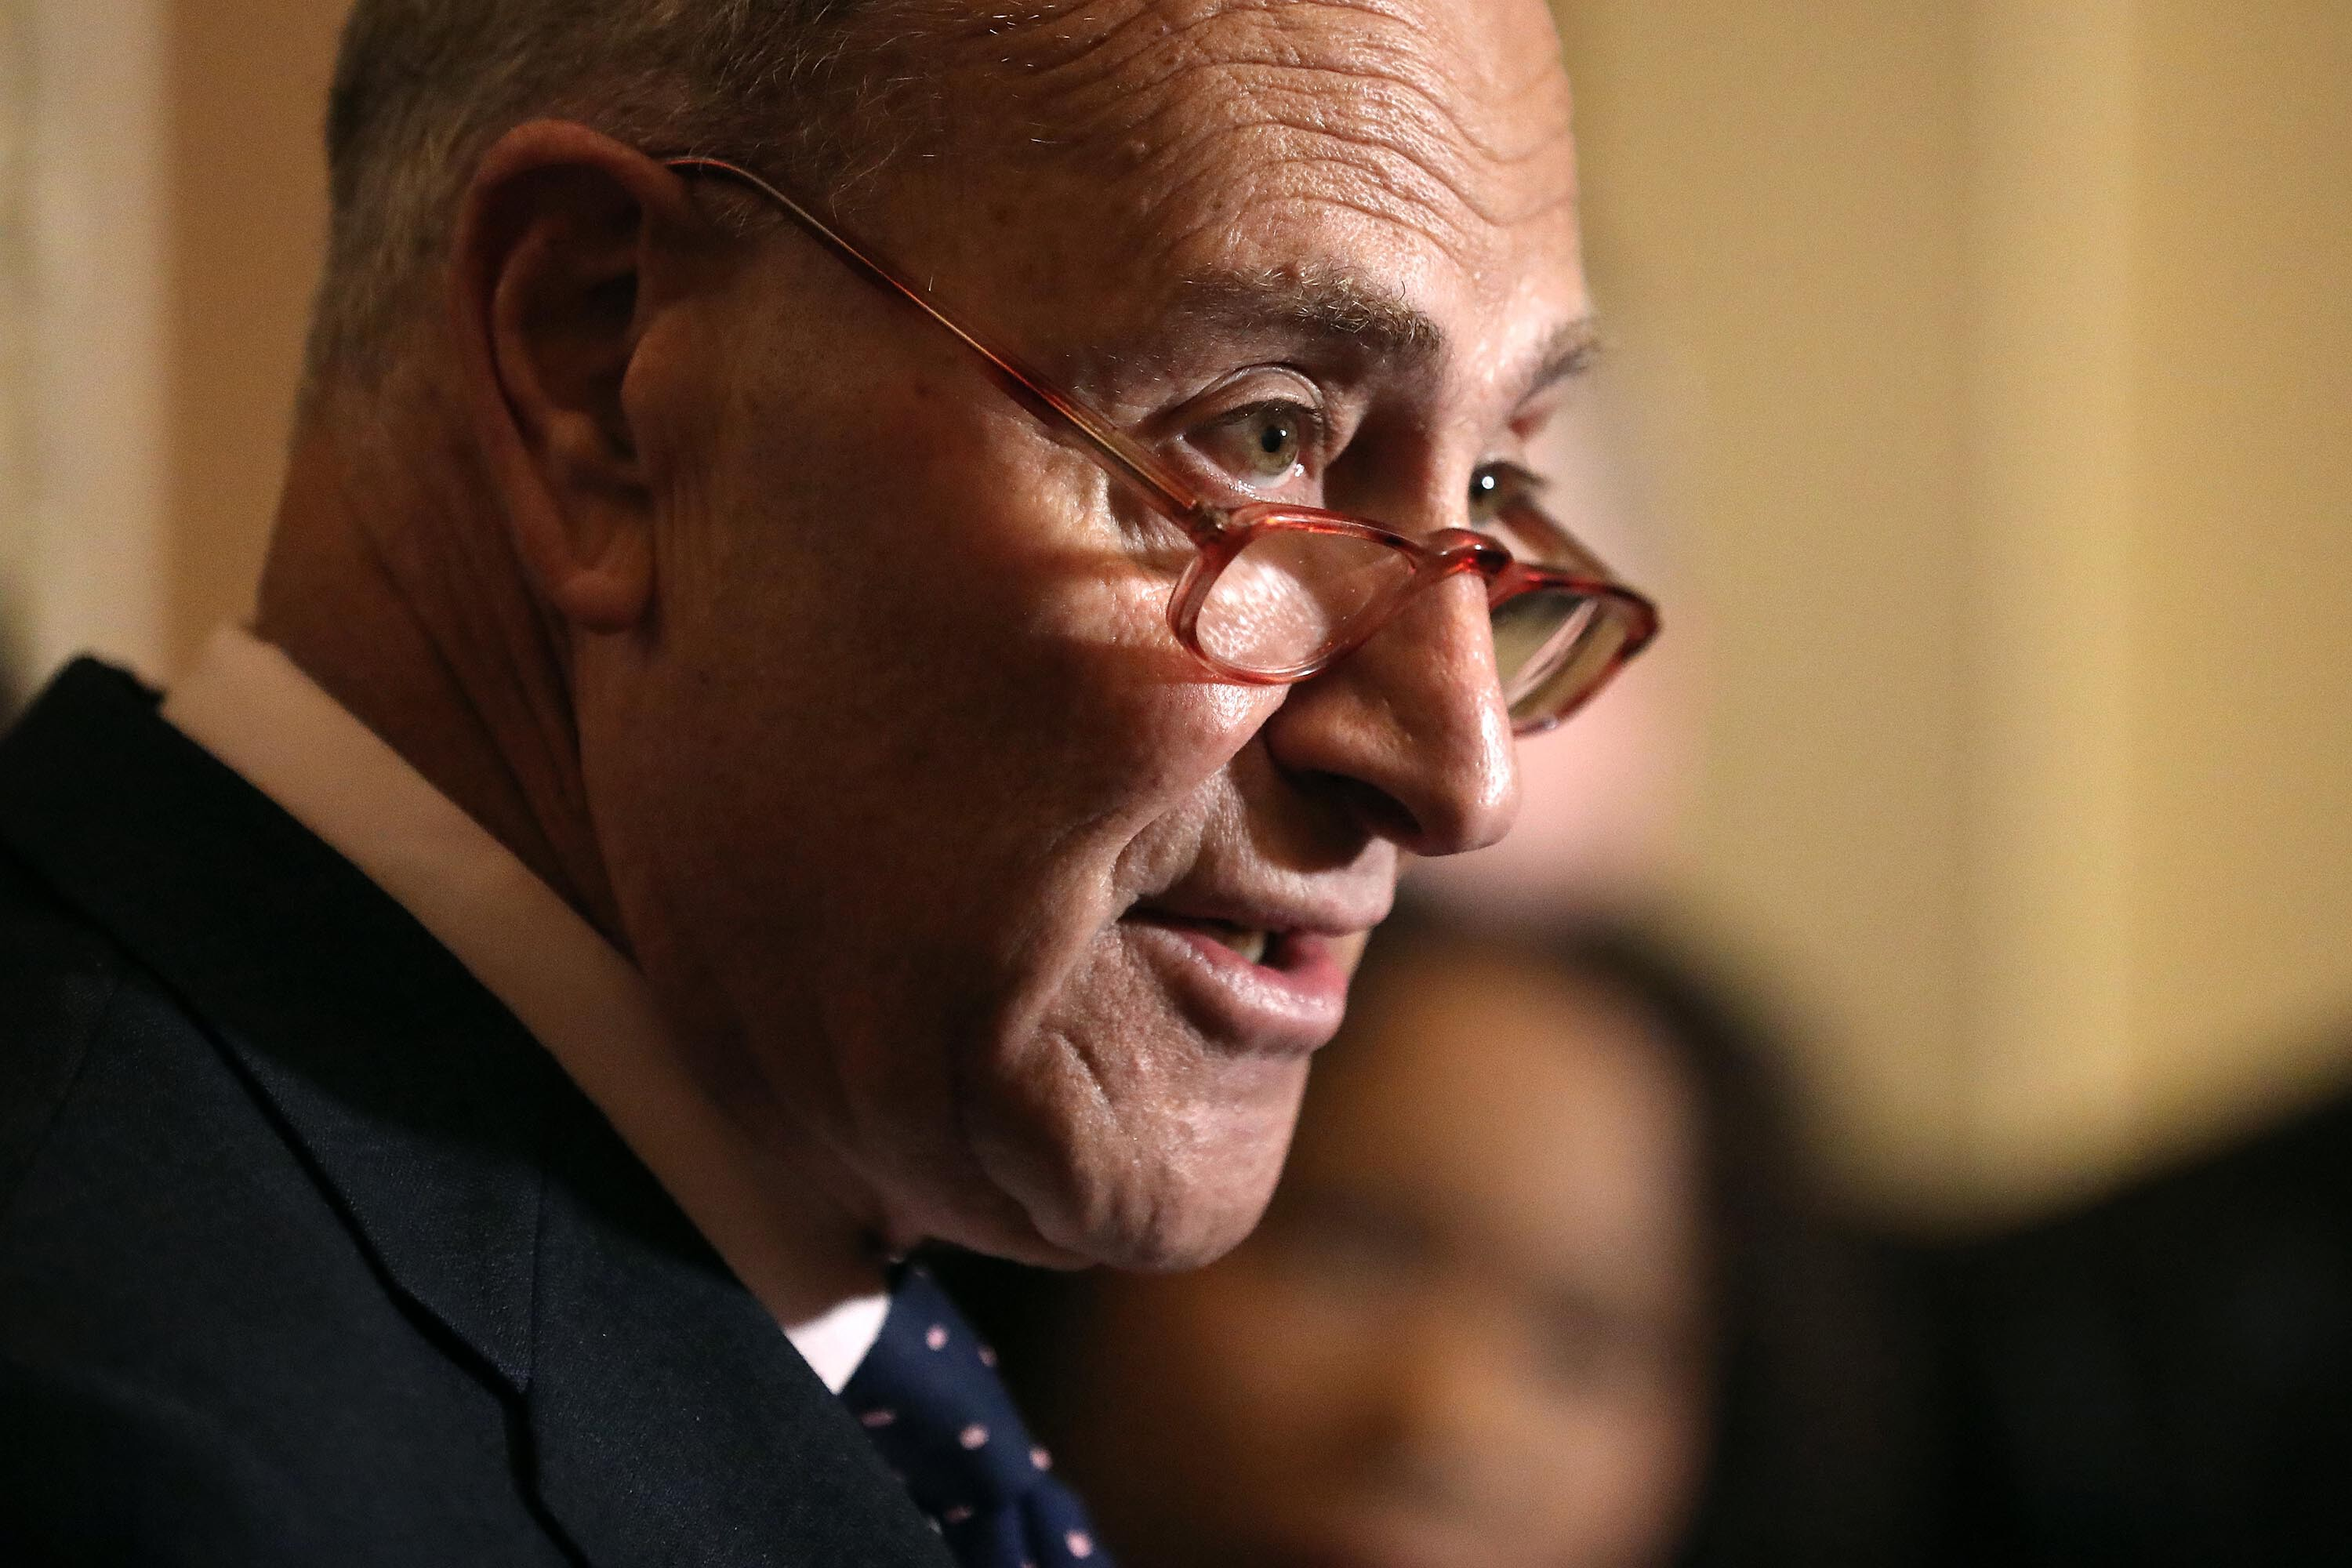 Senate Democrats announce agreement on $3.5 trillion top line for sweeping budget package